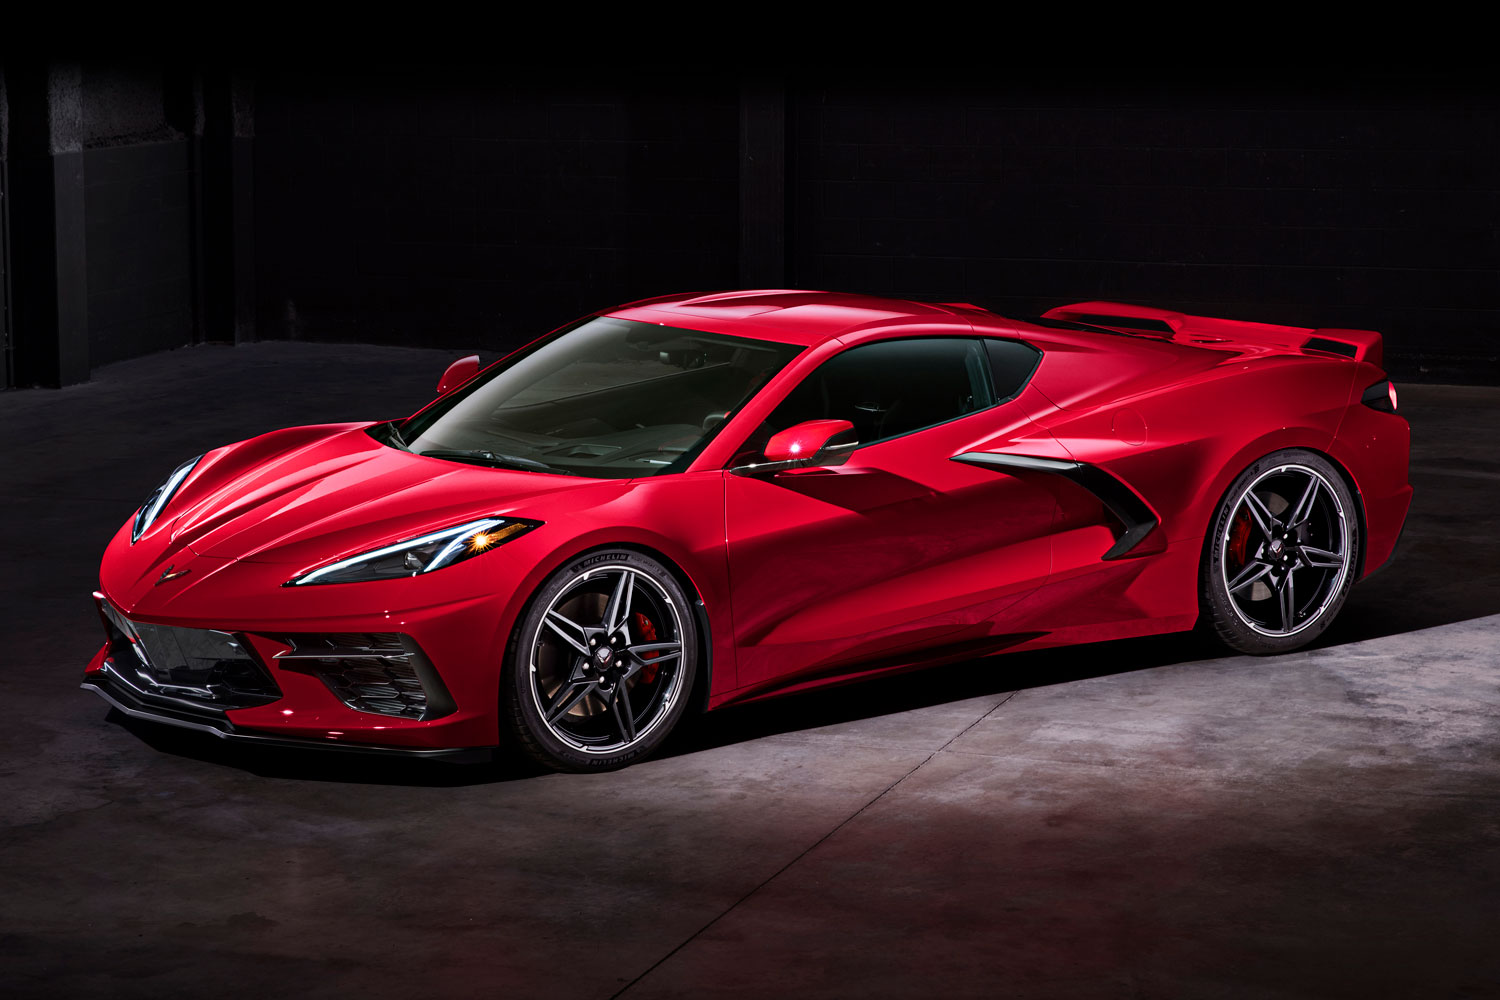 Chevrolet's first mid-engine Corvette is a $60,000 supercar